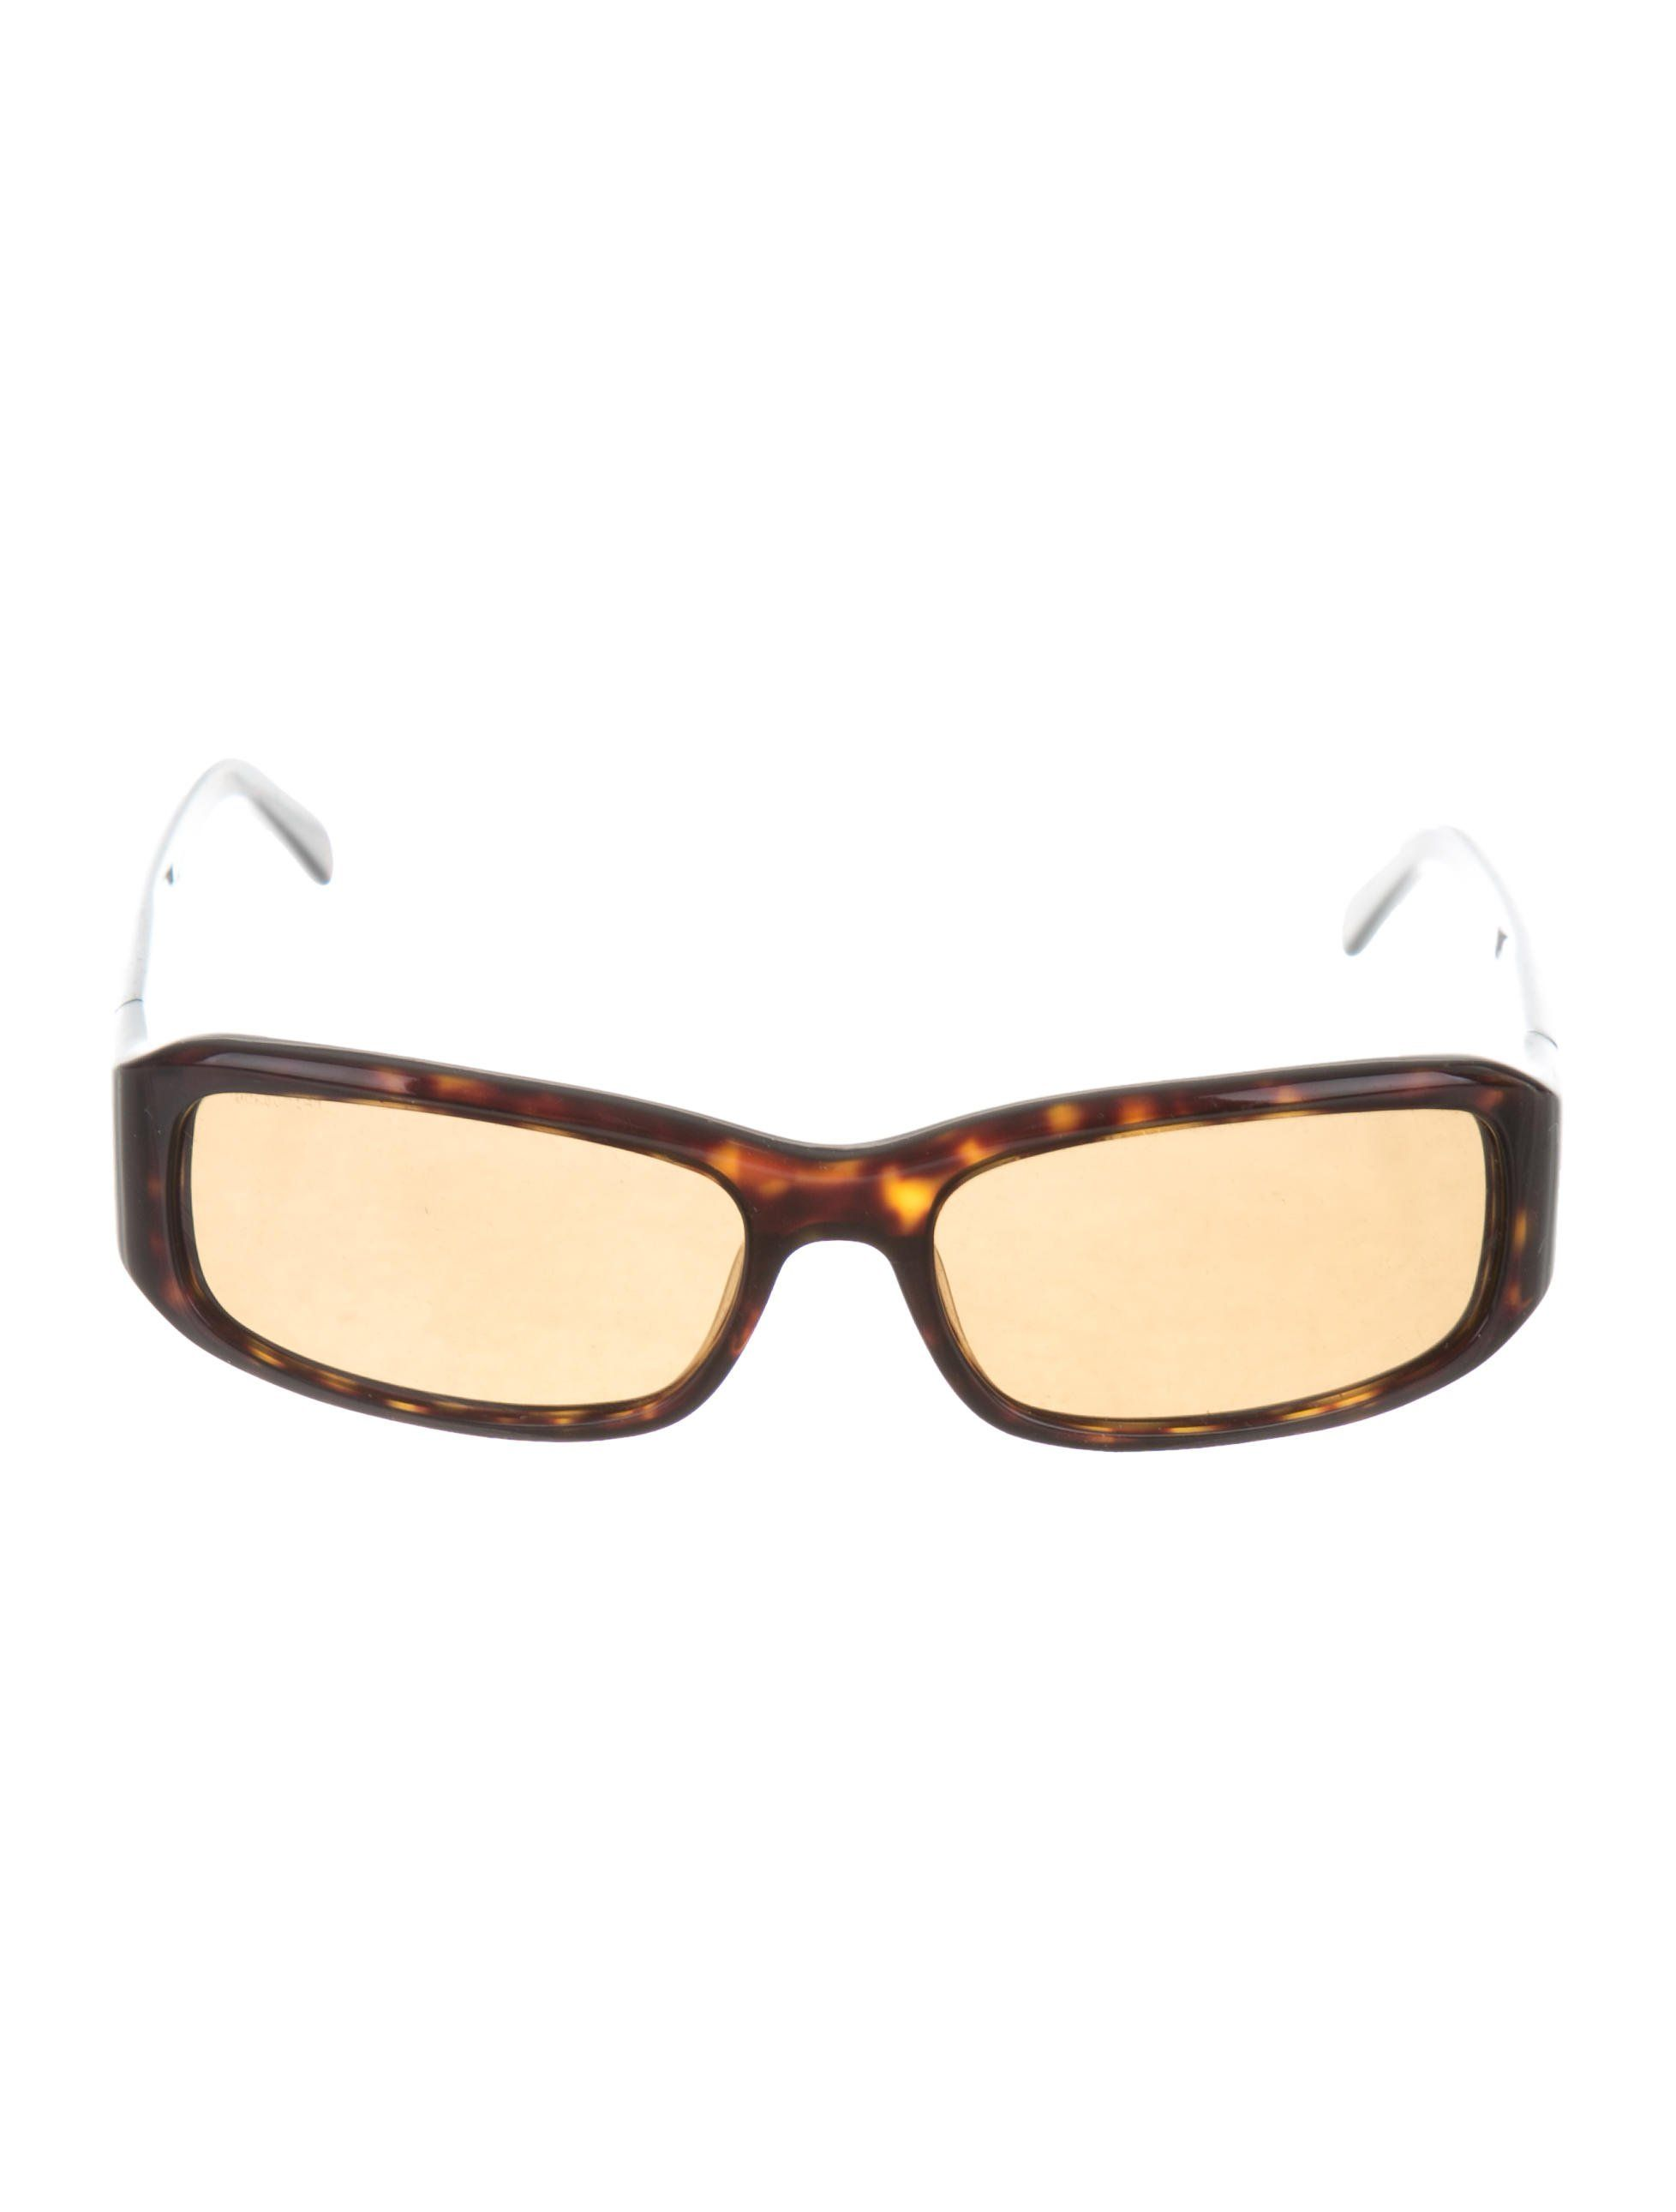 21c1f90e0777f Brown acetate Prada narrow sunglasses with logo at temples and tinted  lenses. Includes case and